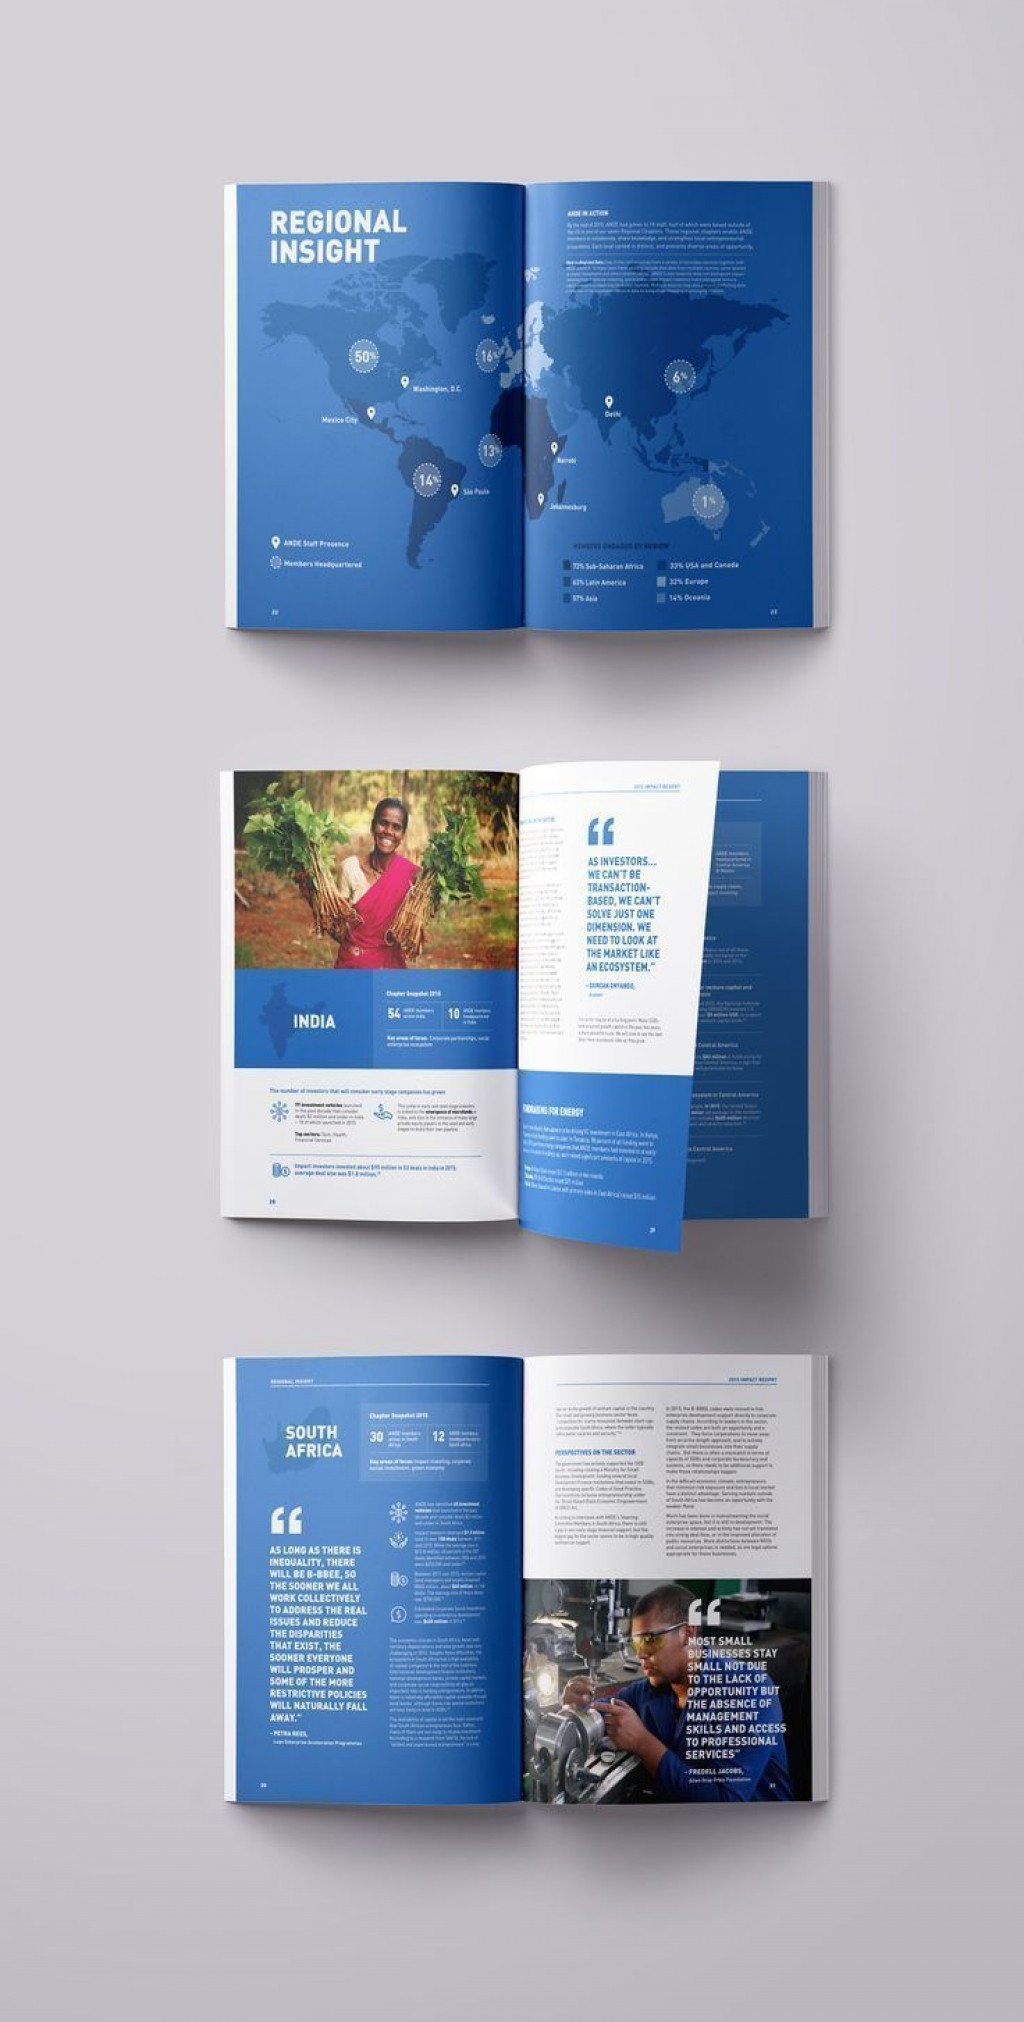 004 Incredible Non Profit Annual Report Template Image  Not For Small NonprofitLarge